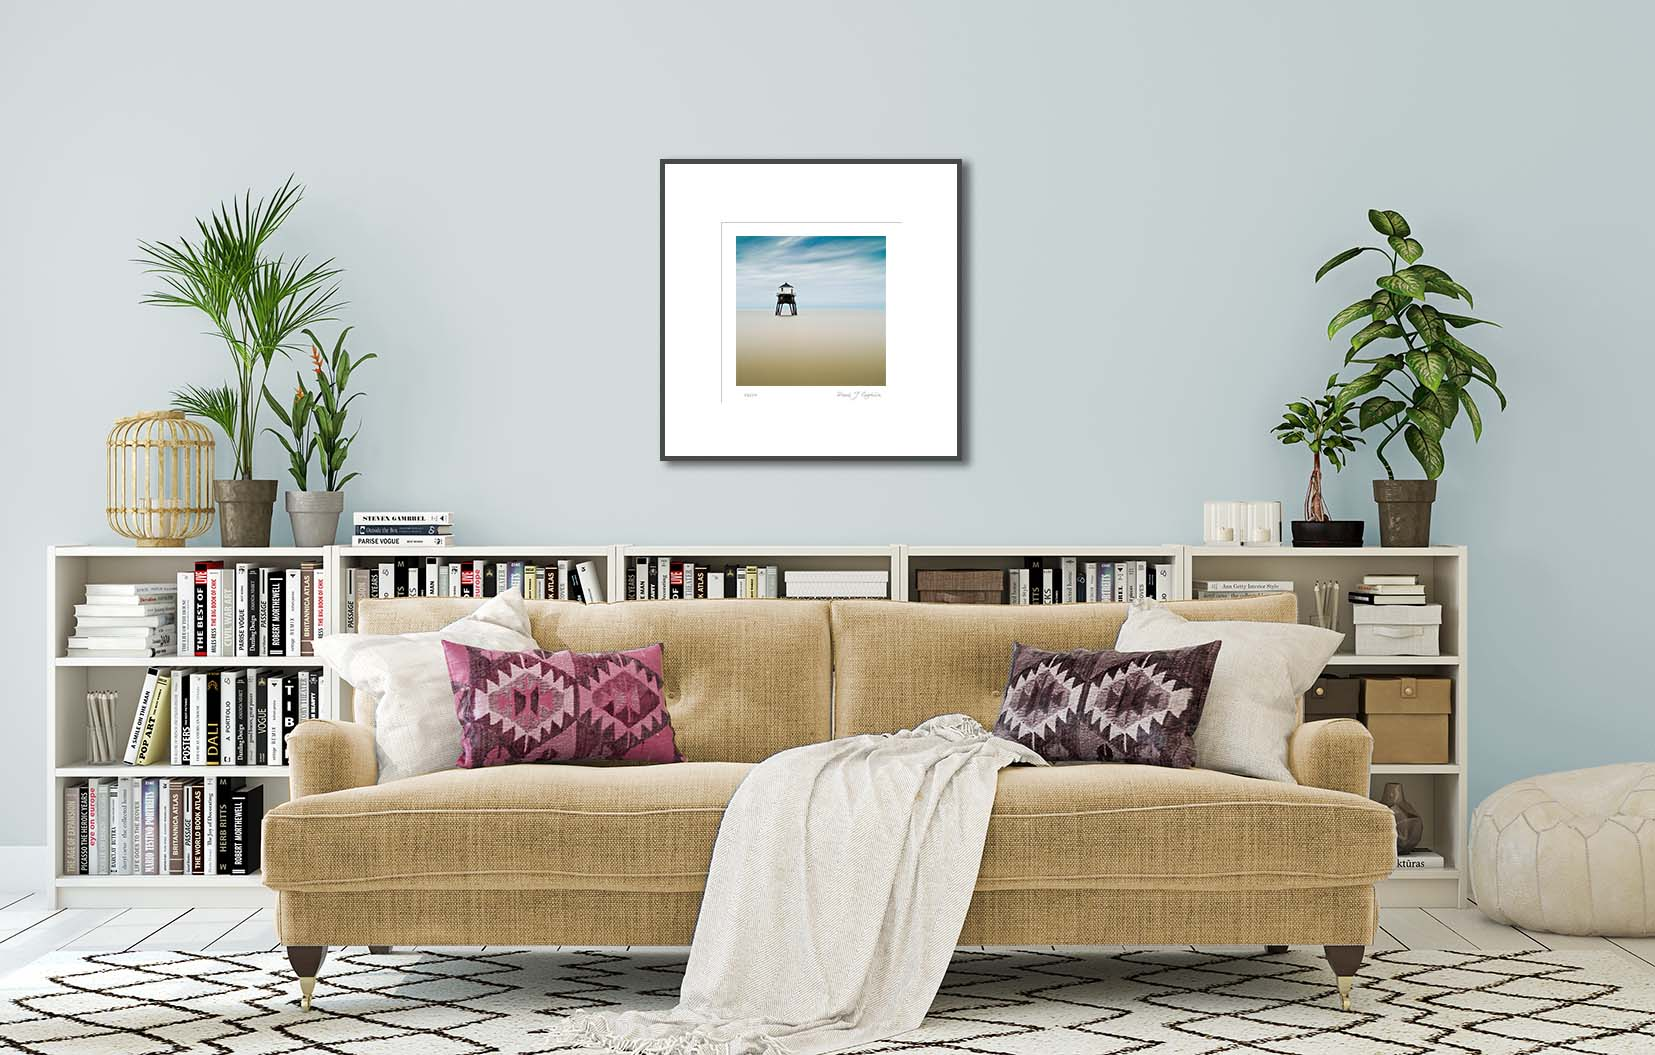 Victorian Lighthouse at sea. Limited edition photographic print of an old Victorian lighthouse by fine art photographer Paul Coghlin.